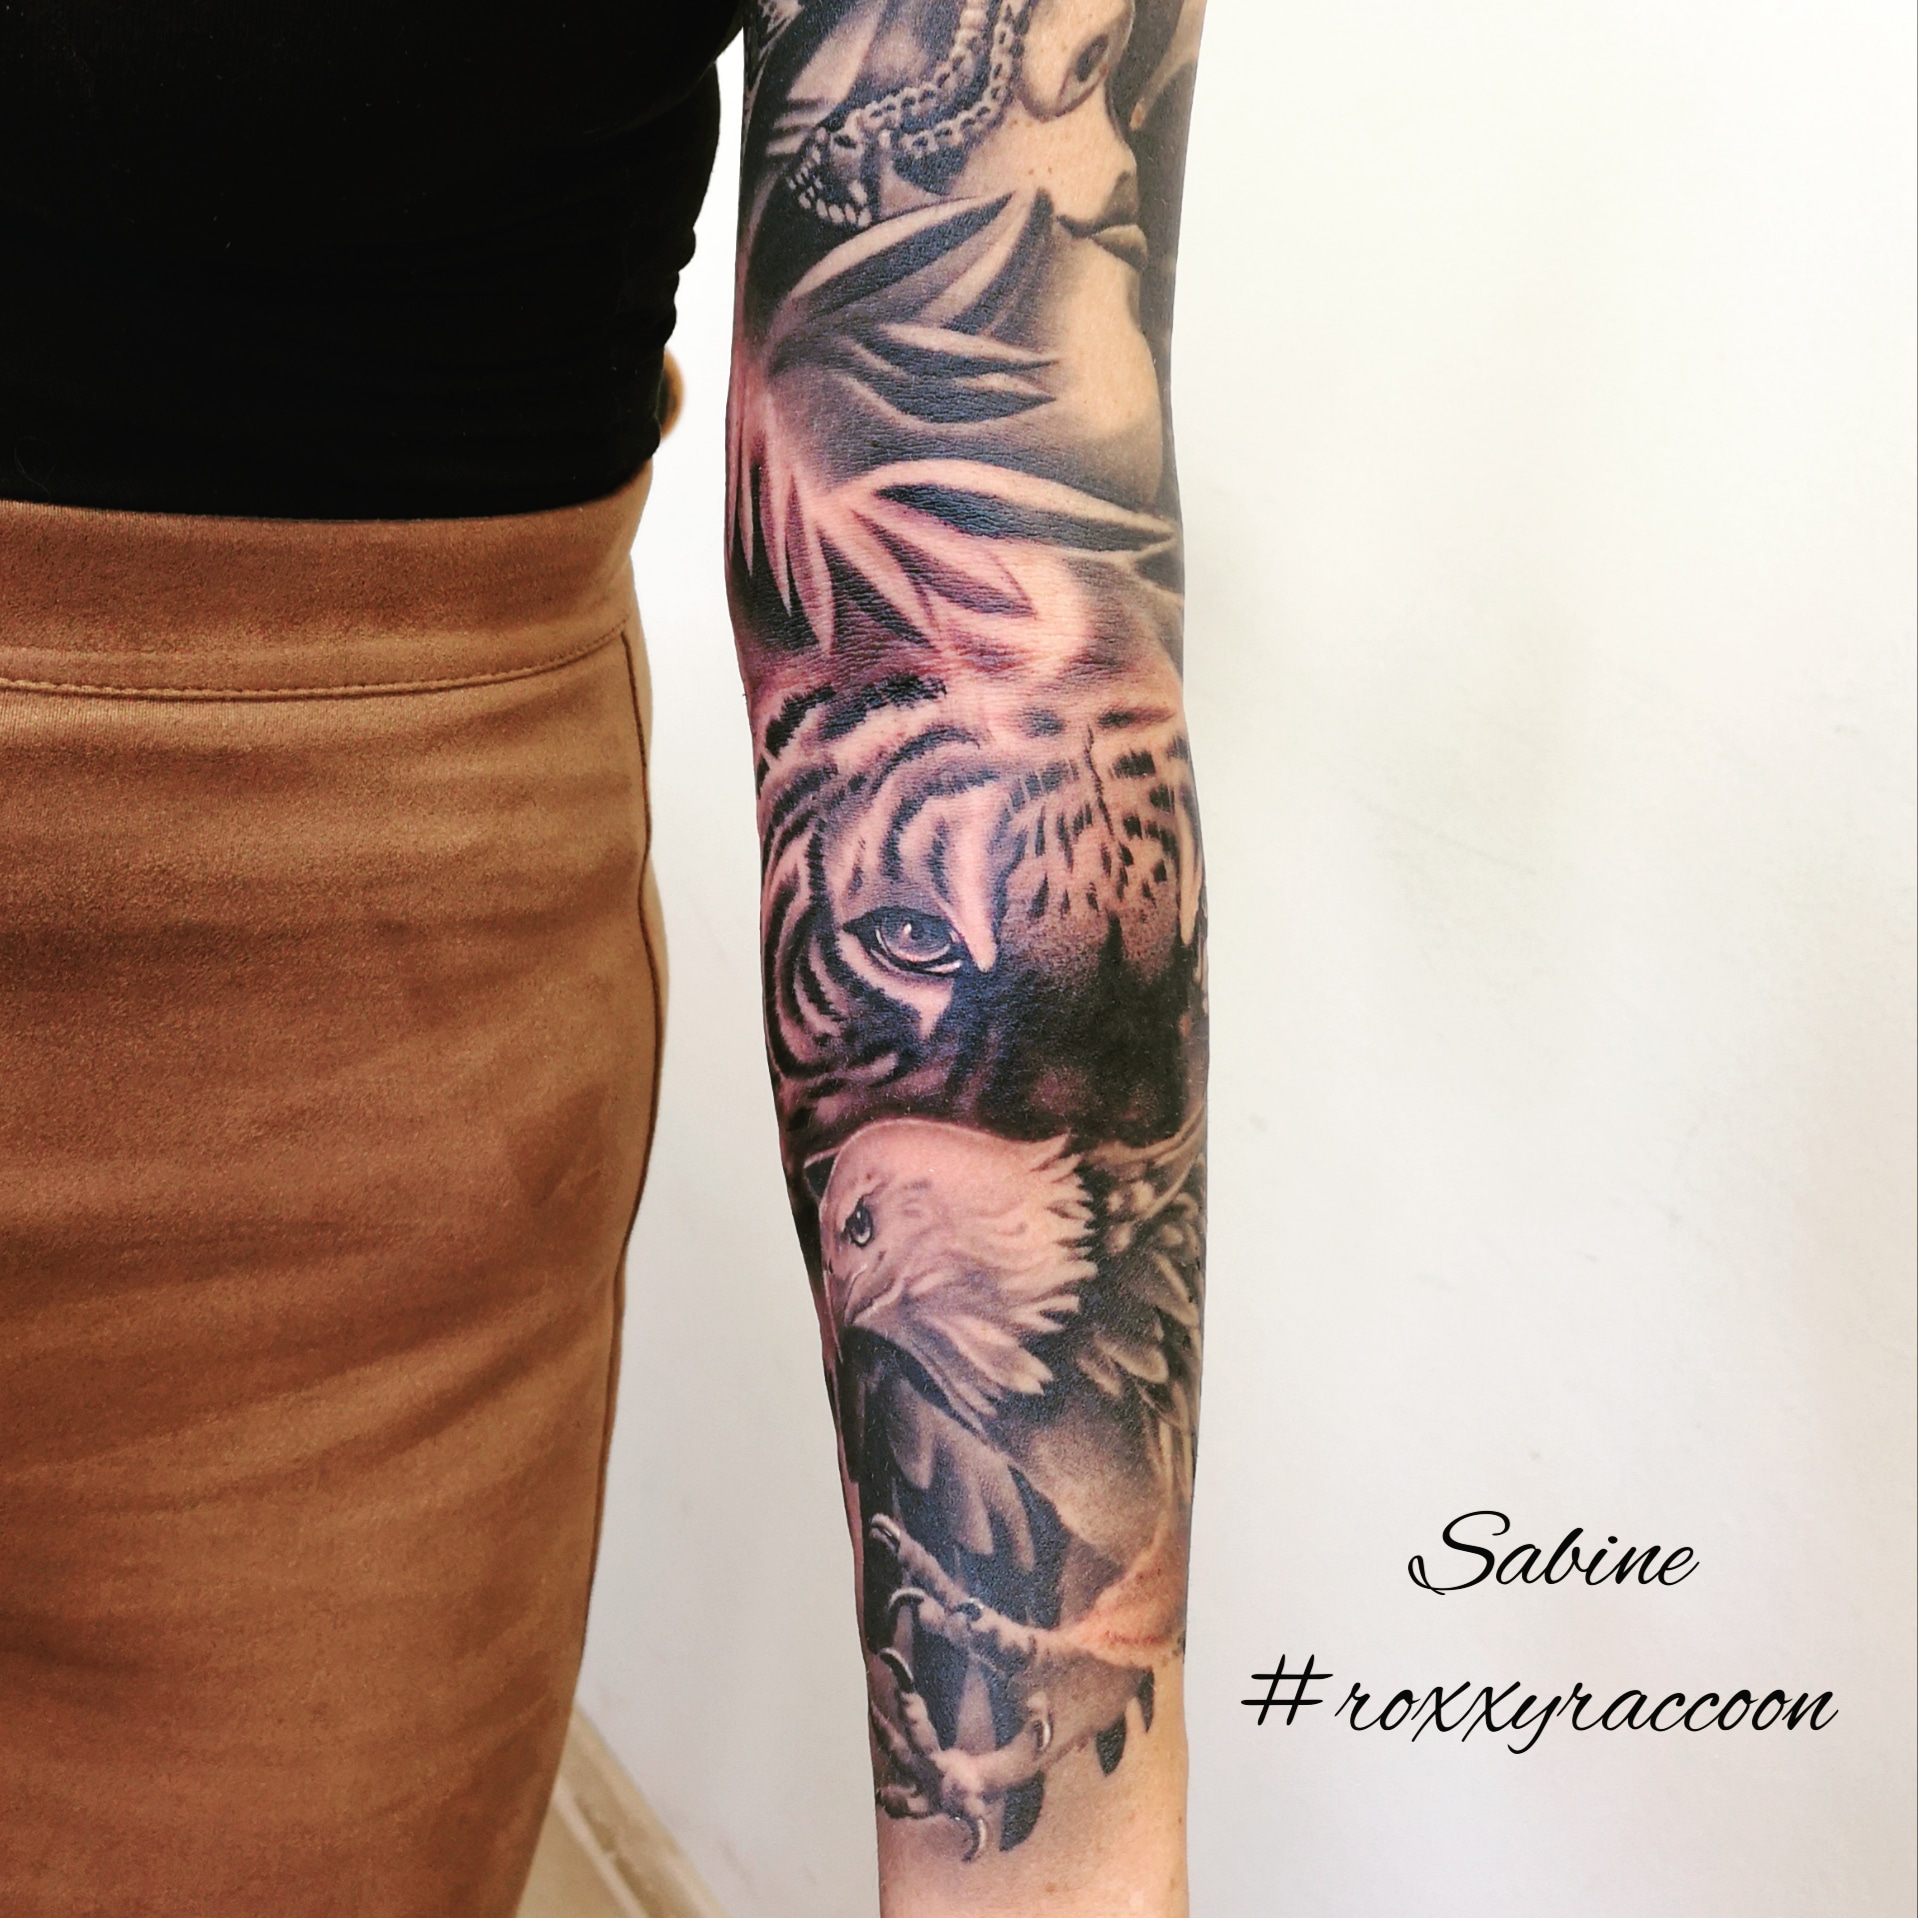 tiger-adler-maske-tattoo-arm